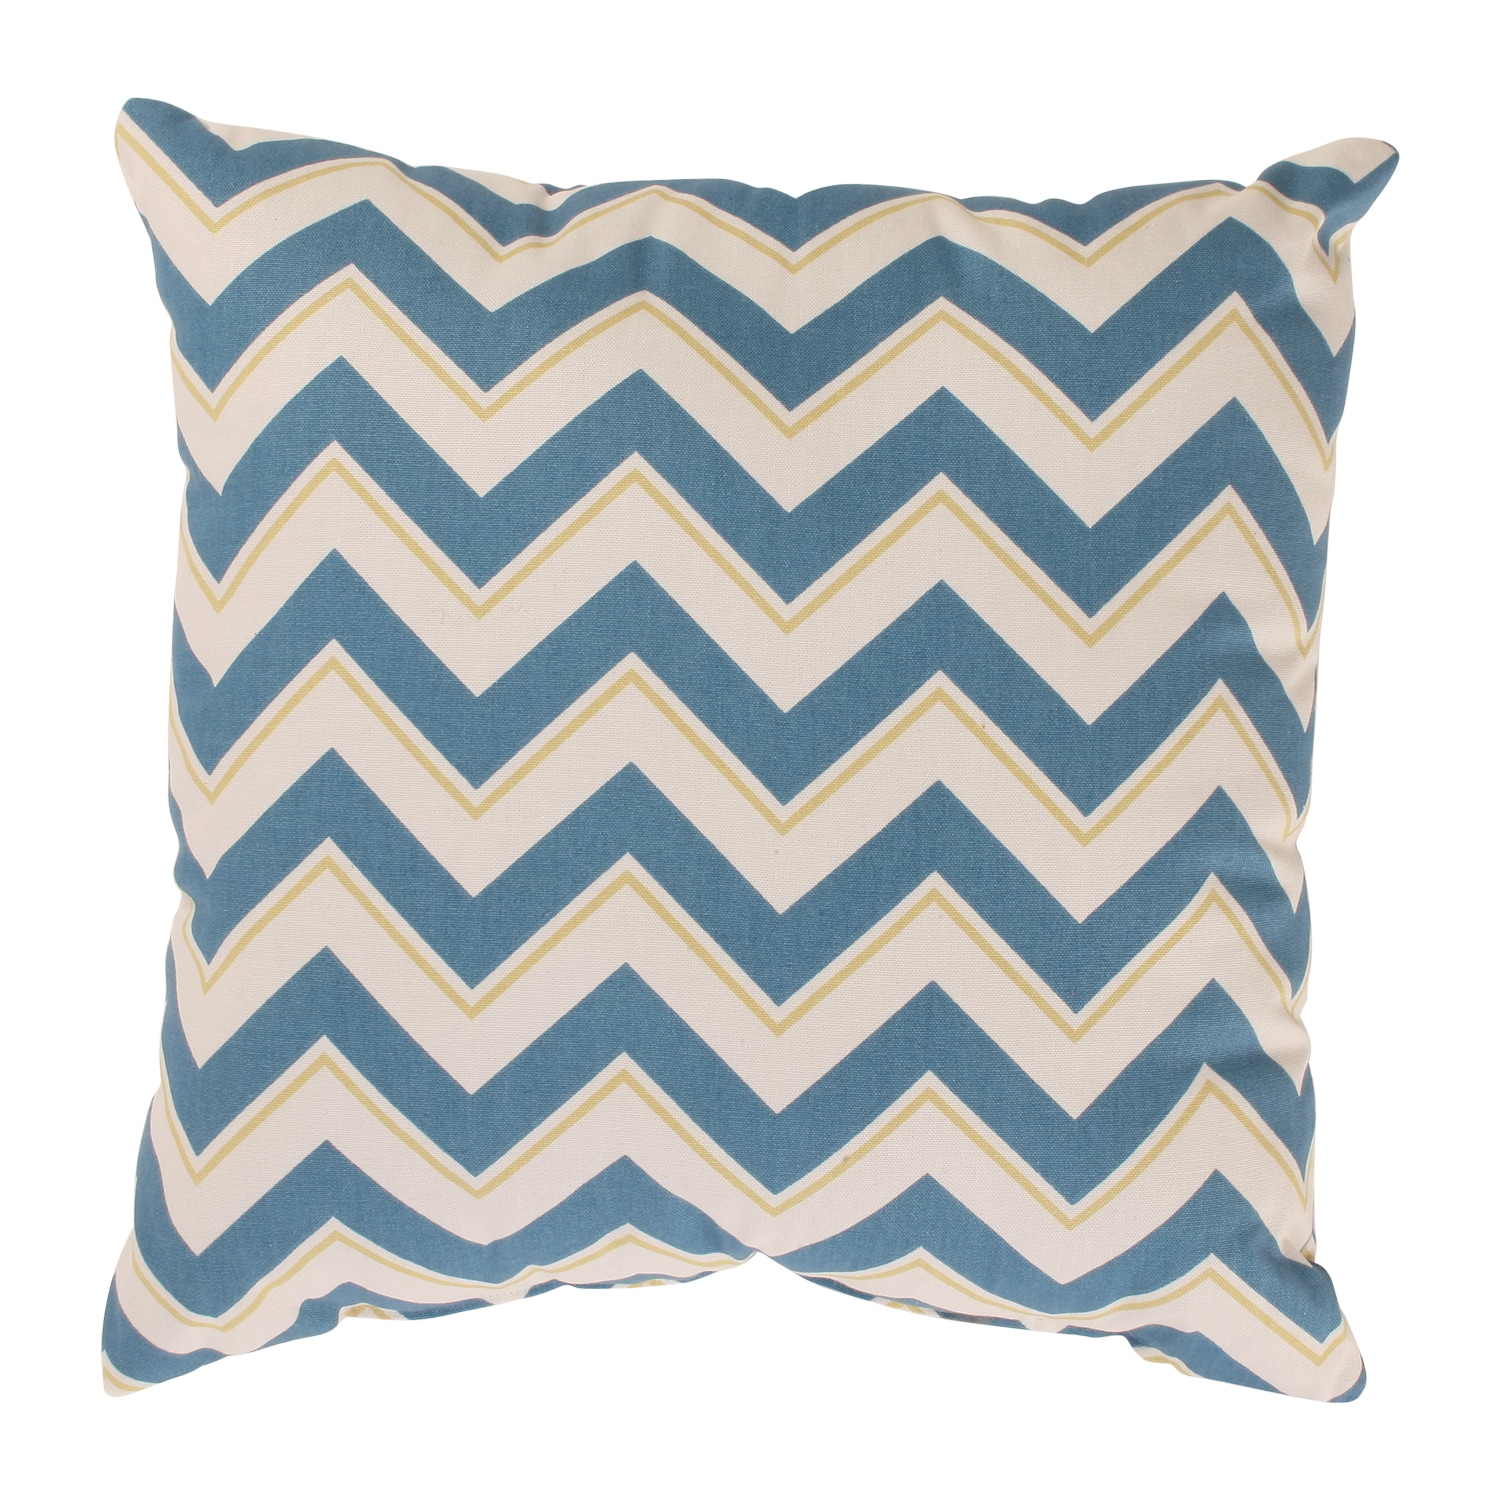 Chevron 16.5-inch Throw Pillow